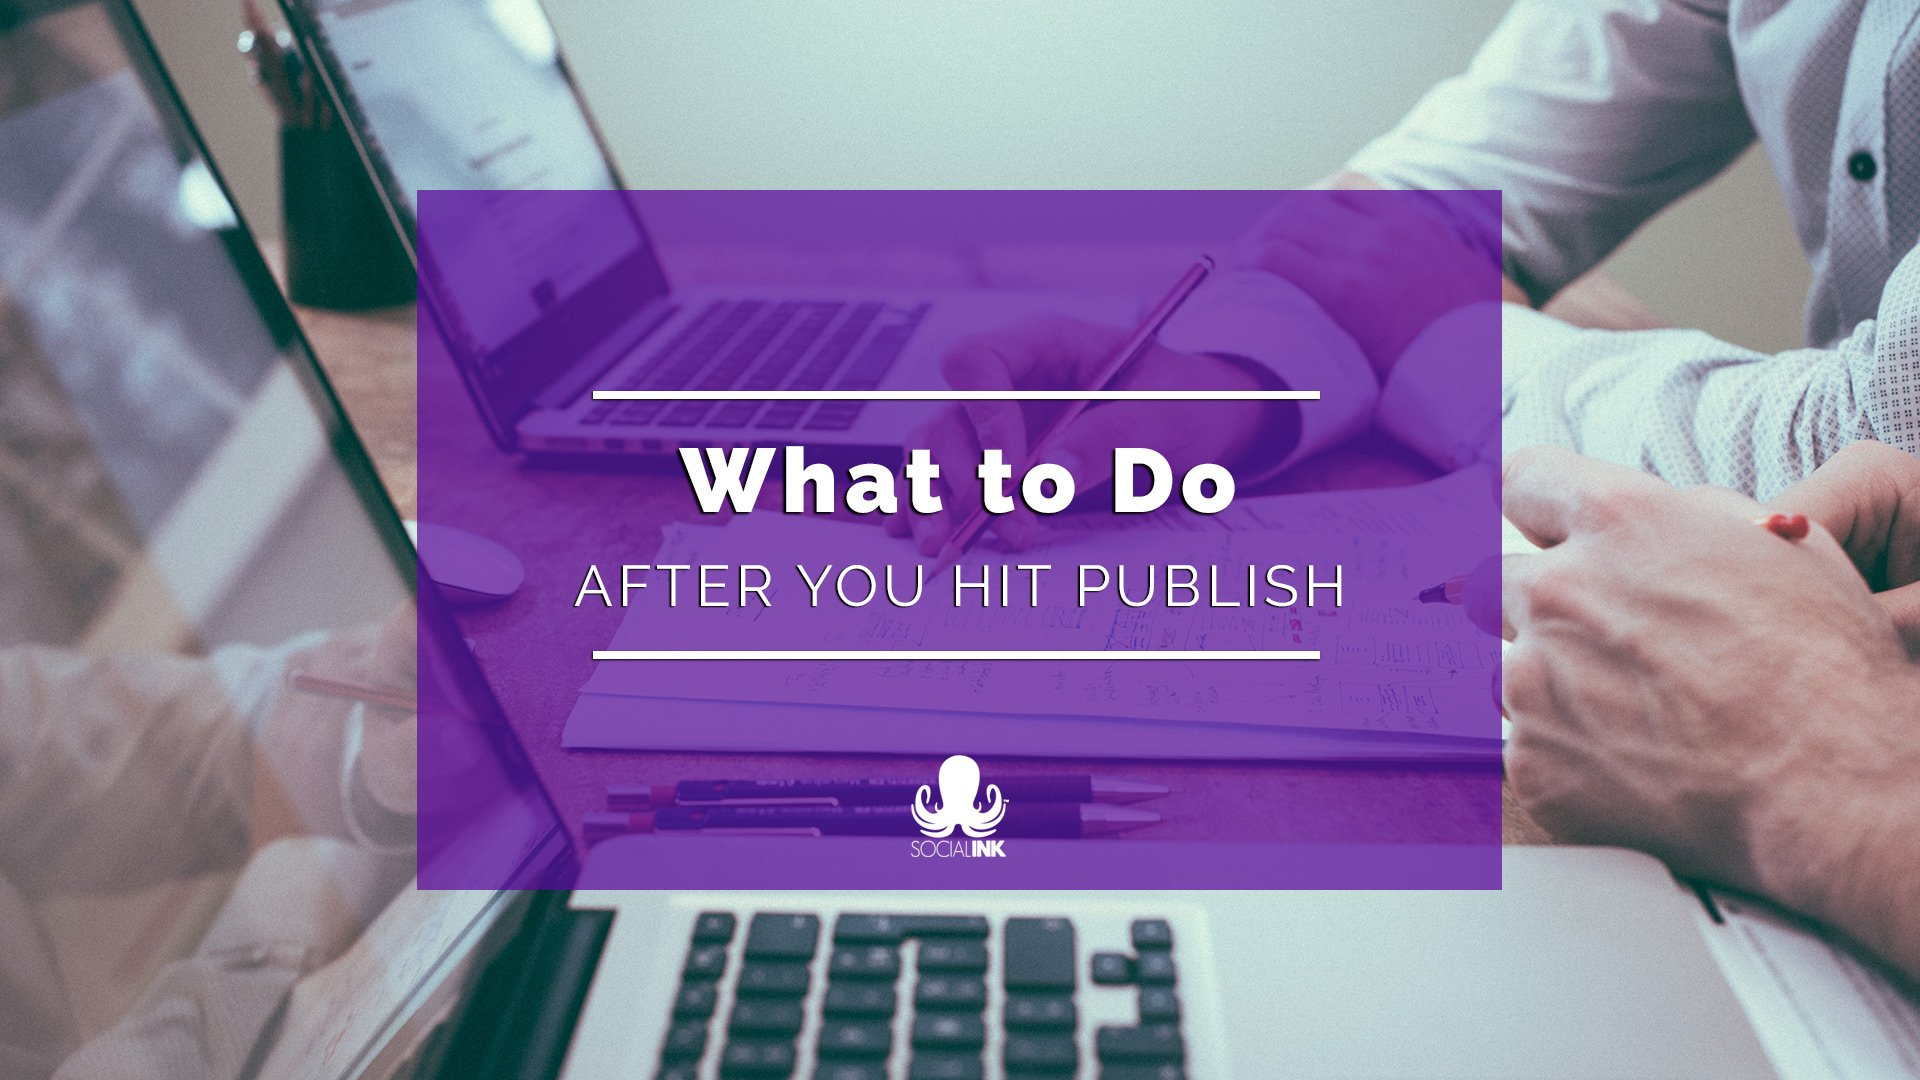 7 Things to Do After You Publish A Blog Post